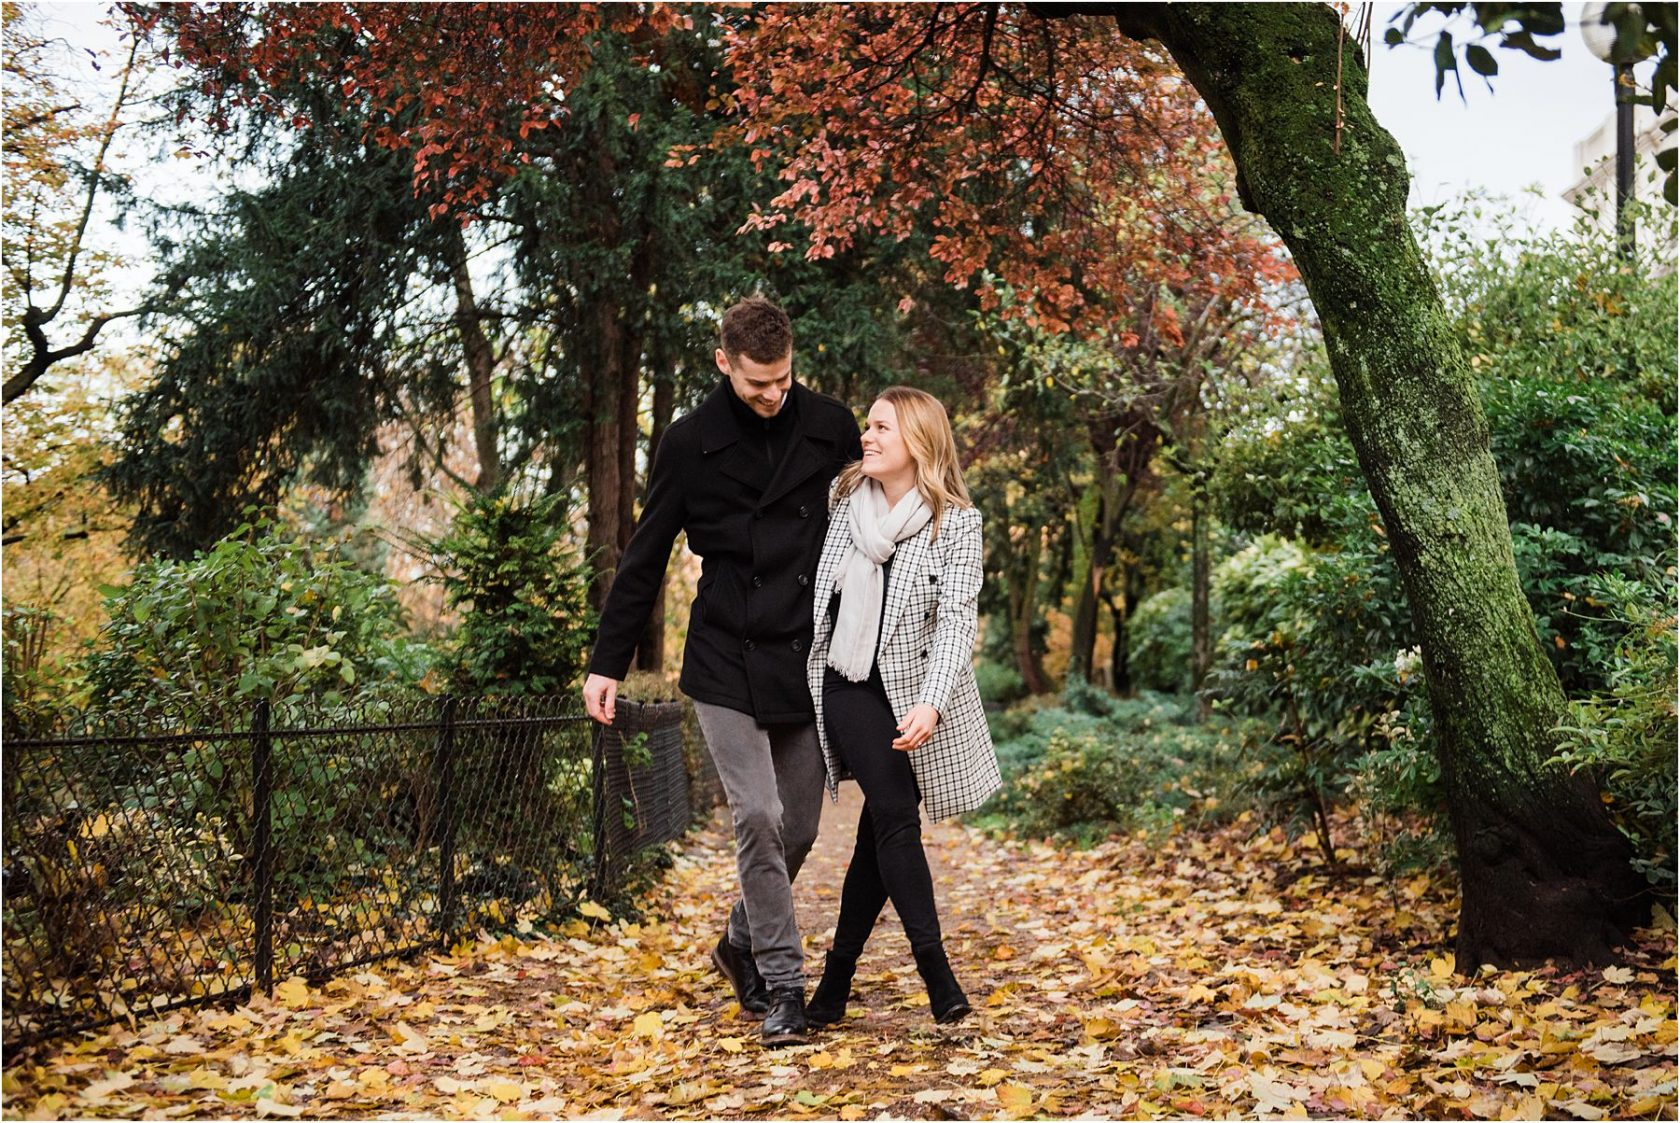 engagement shoot in the fall leaves in Paris